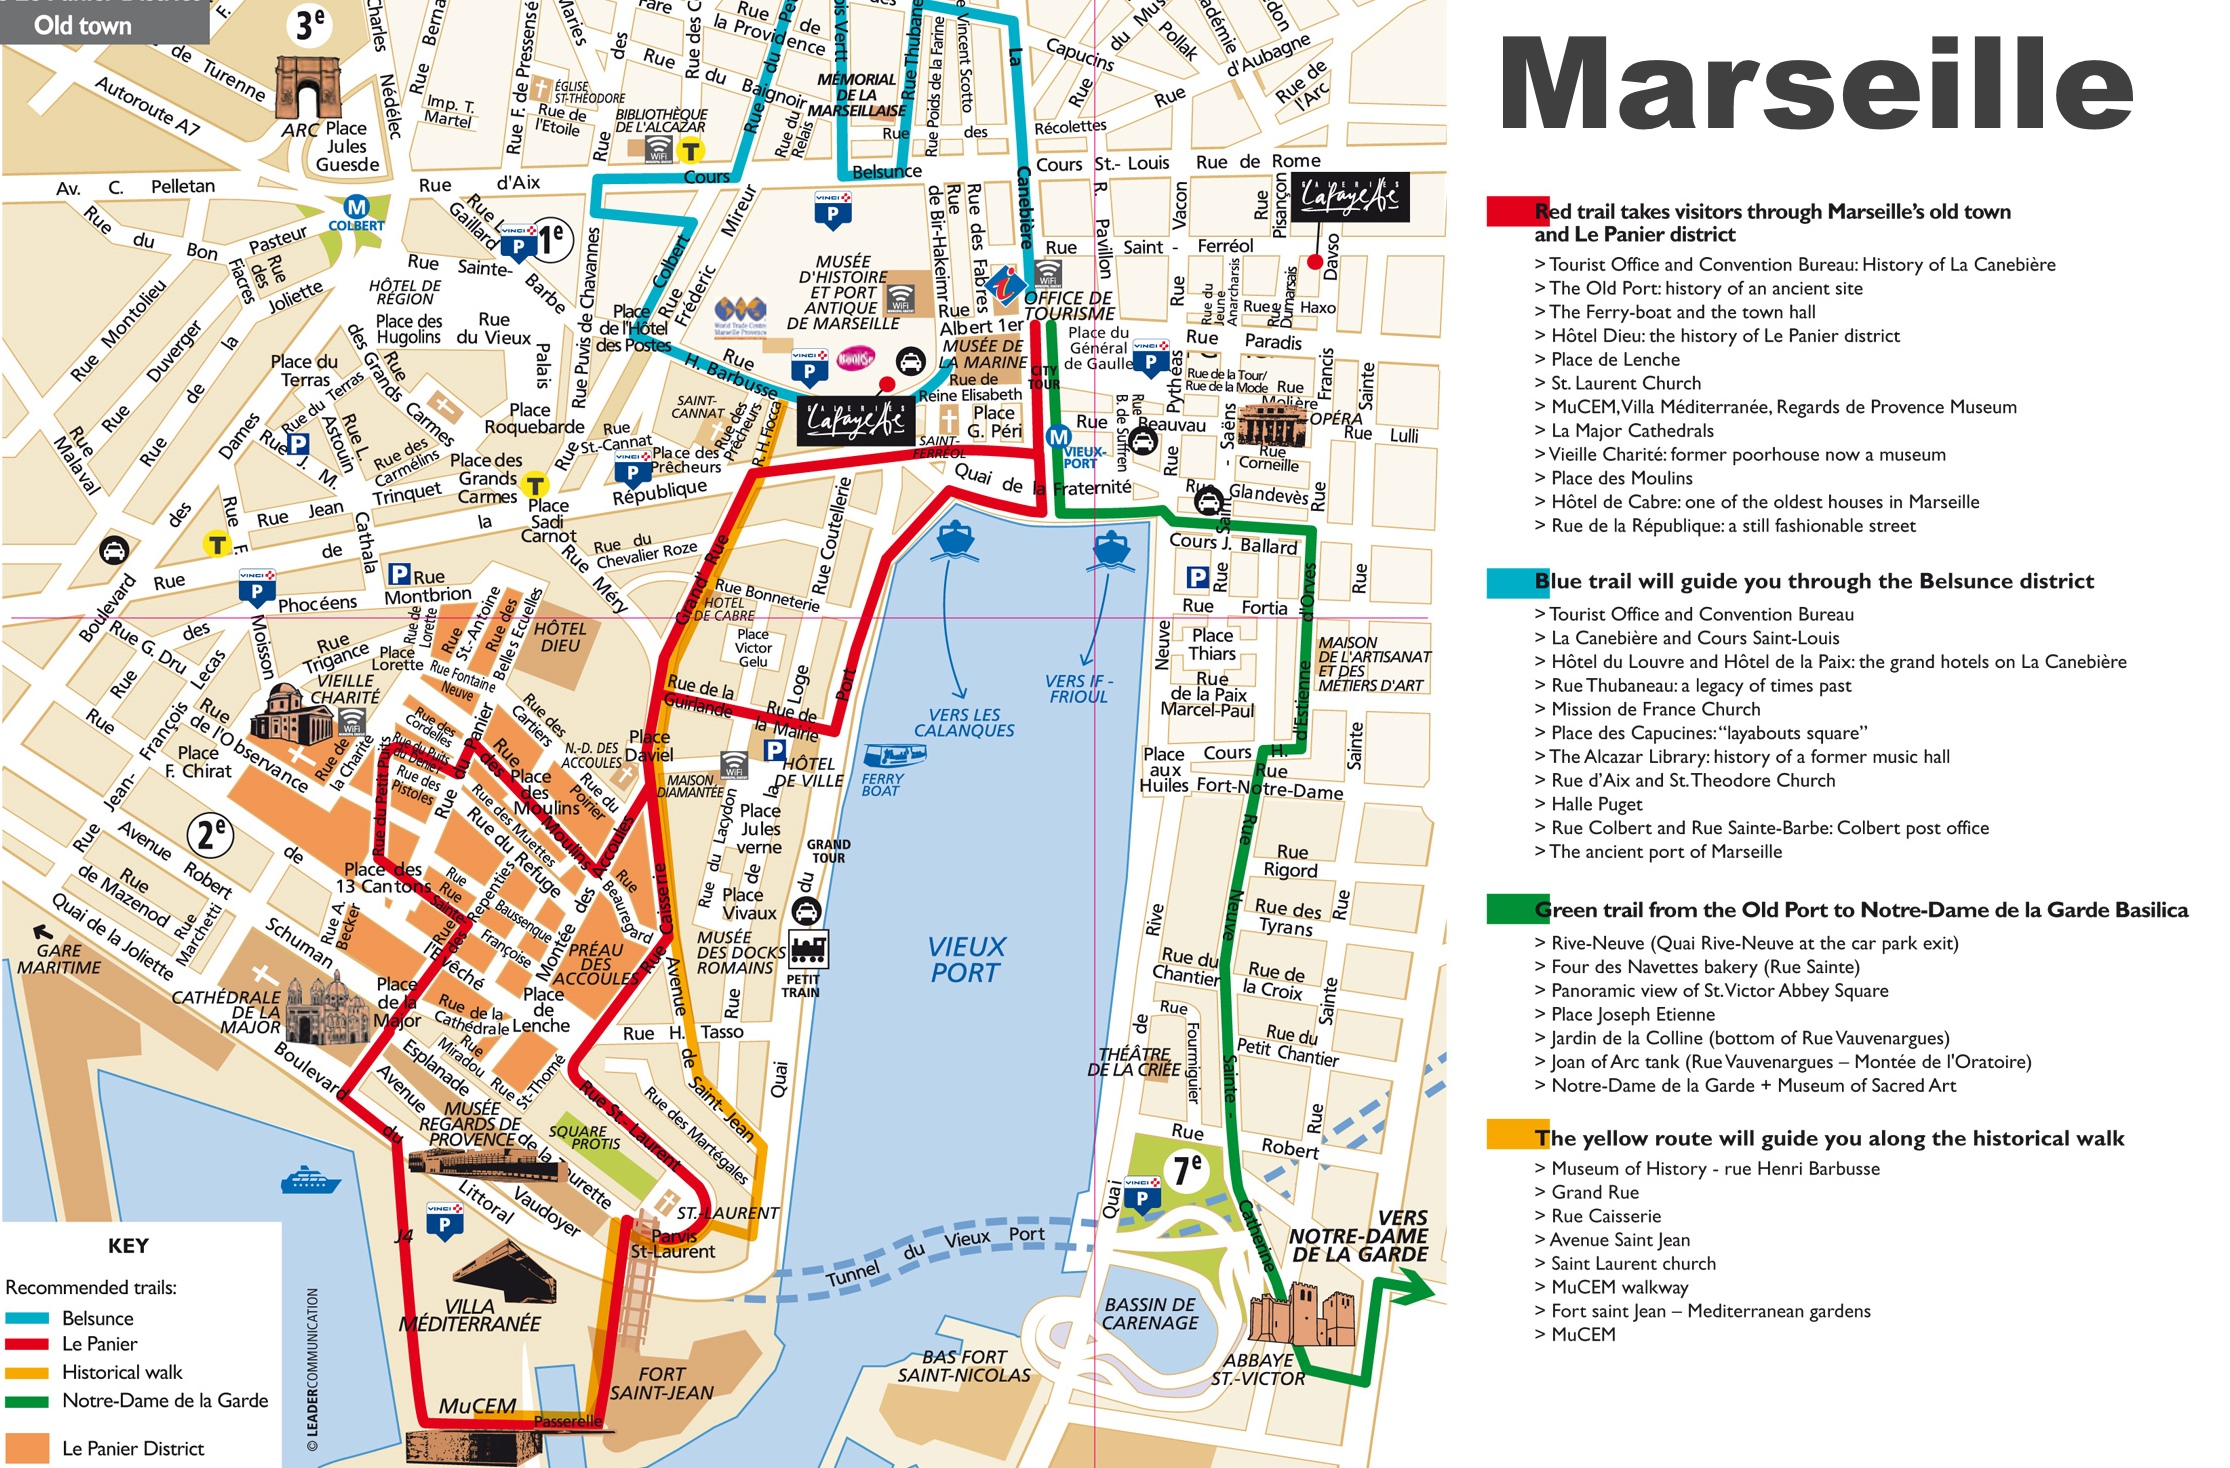 Marseille tourist attractions map – France Tourist Attractions Map